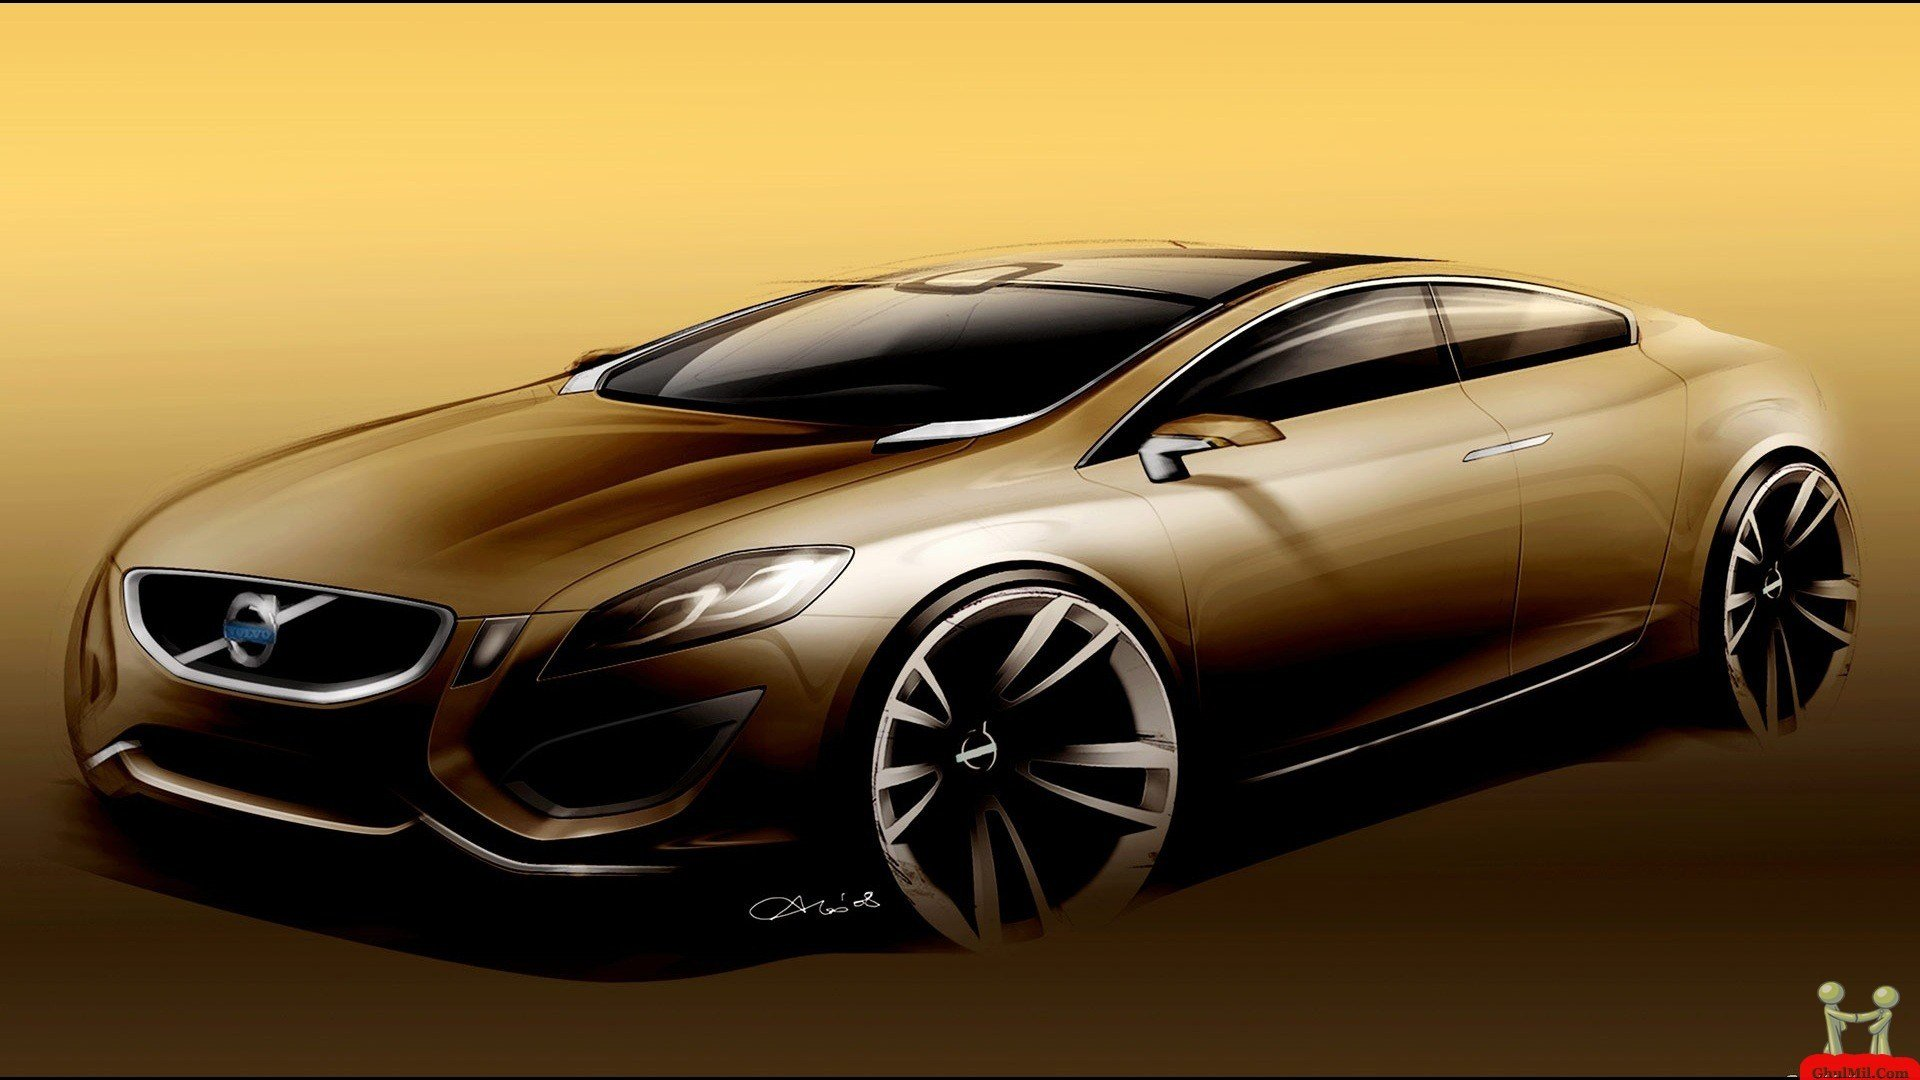 New Cool Gold Cars Wallpapers Wallpapersafari On This Month